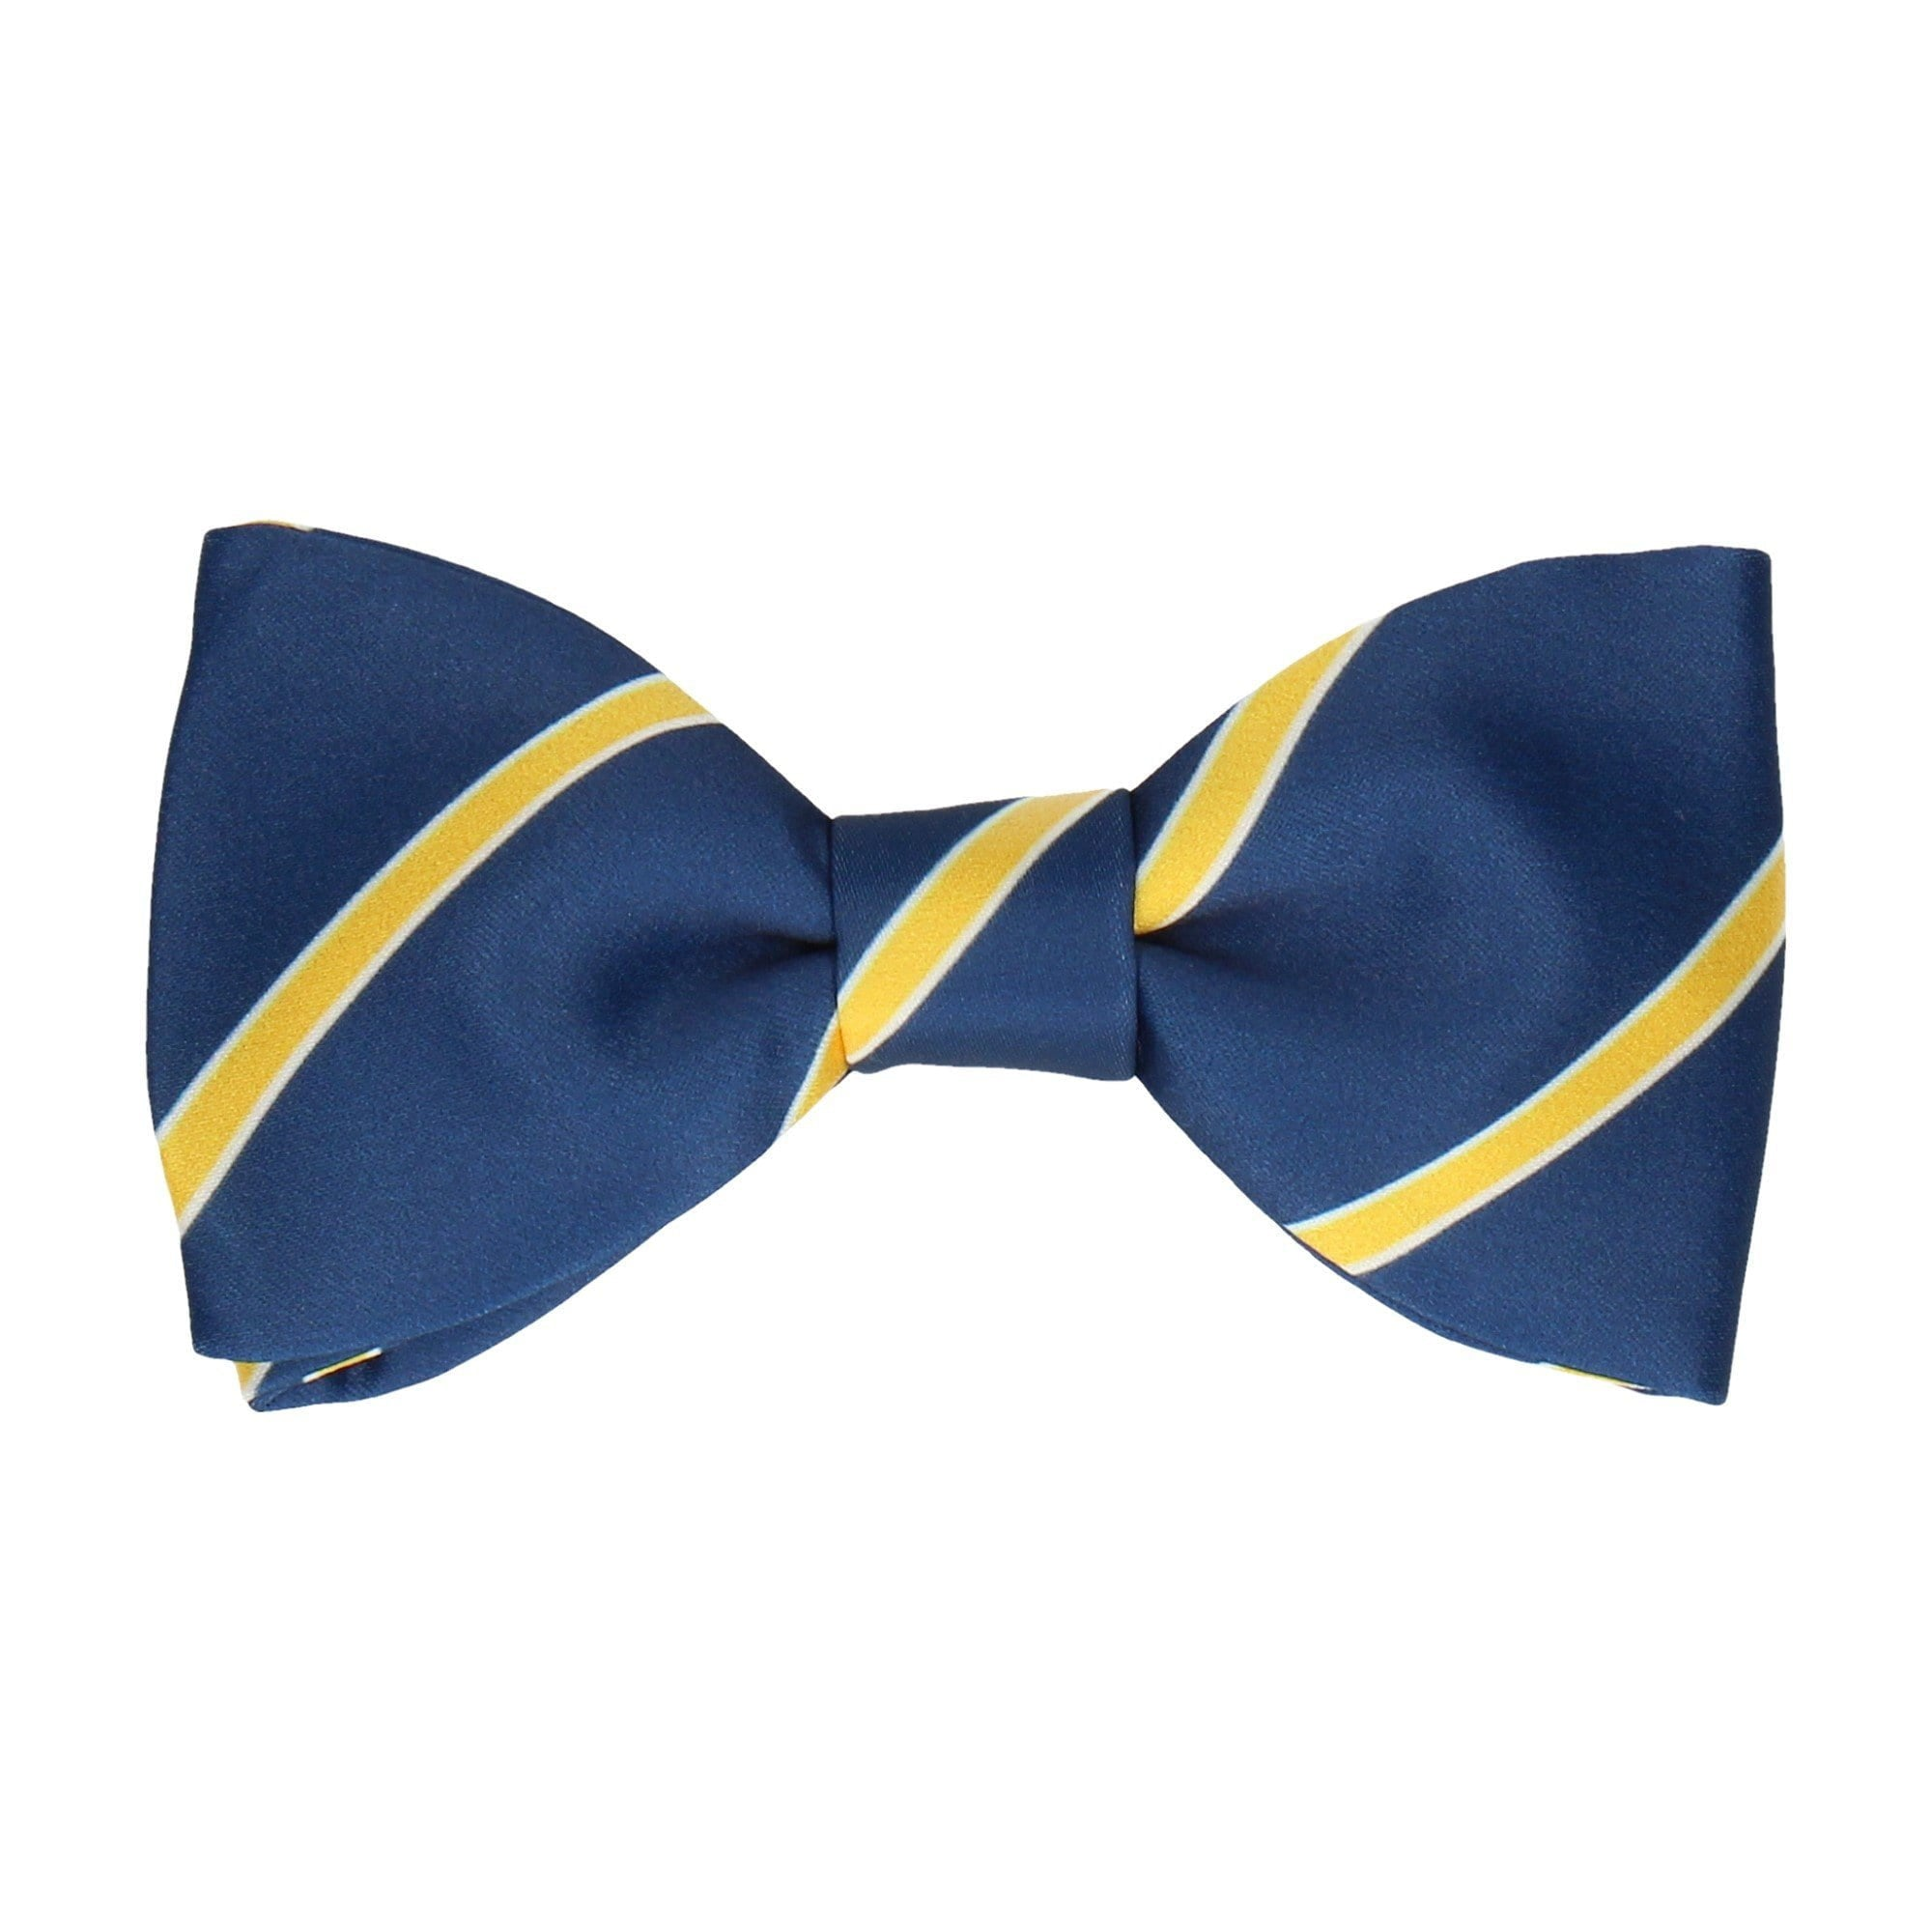 Doxford in Blue & Yellow Bow Tie